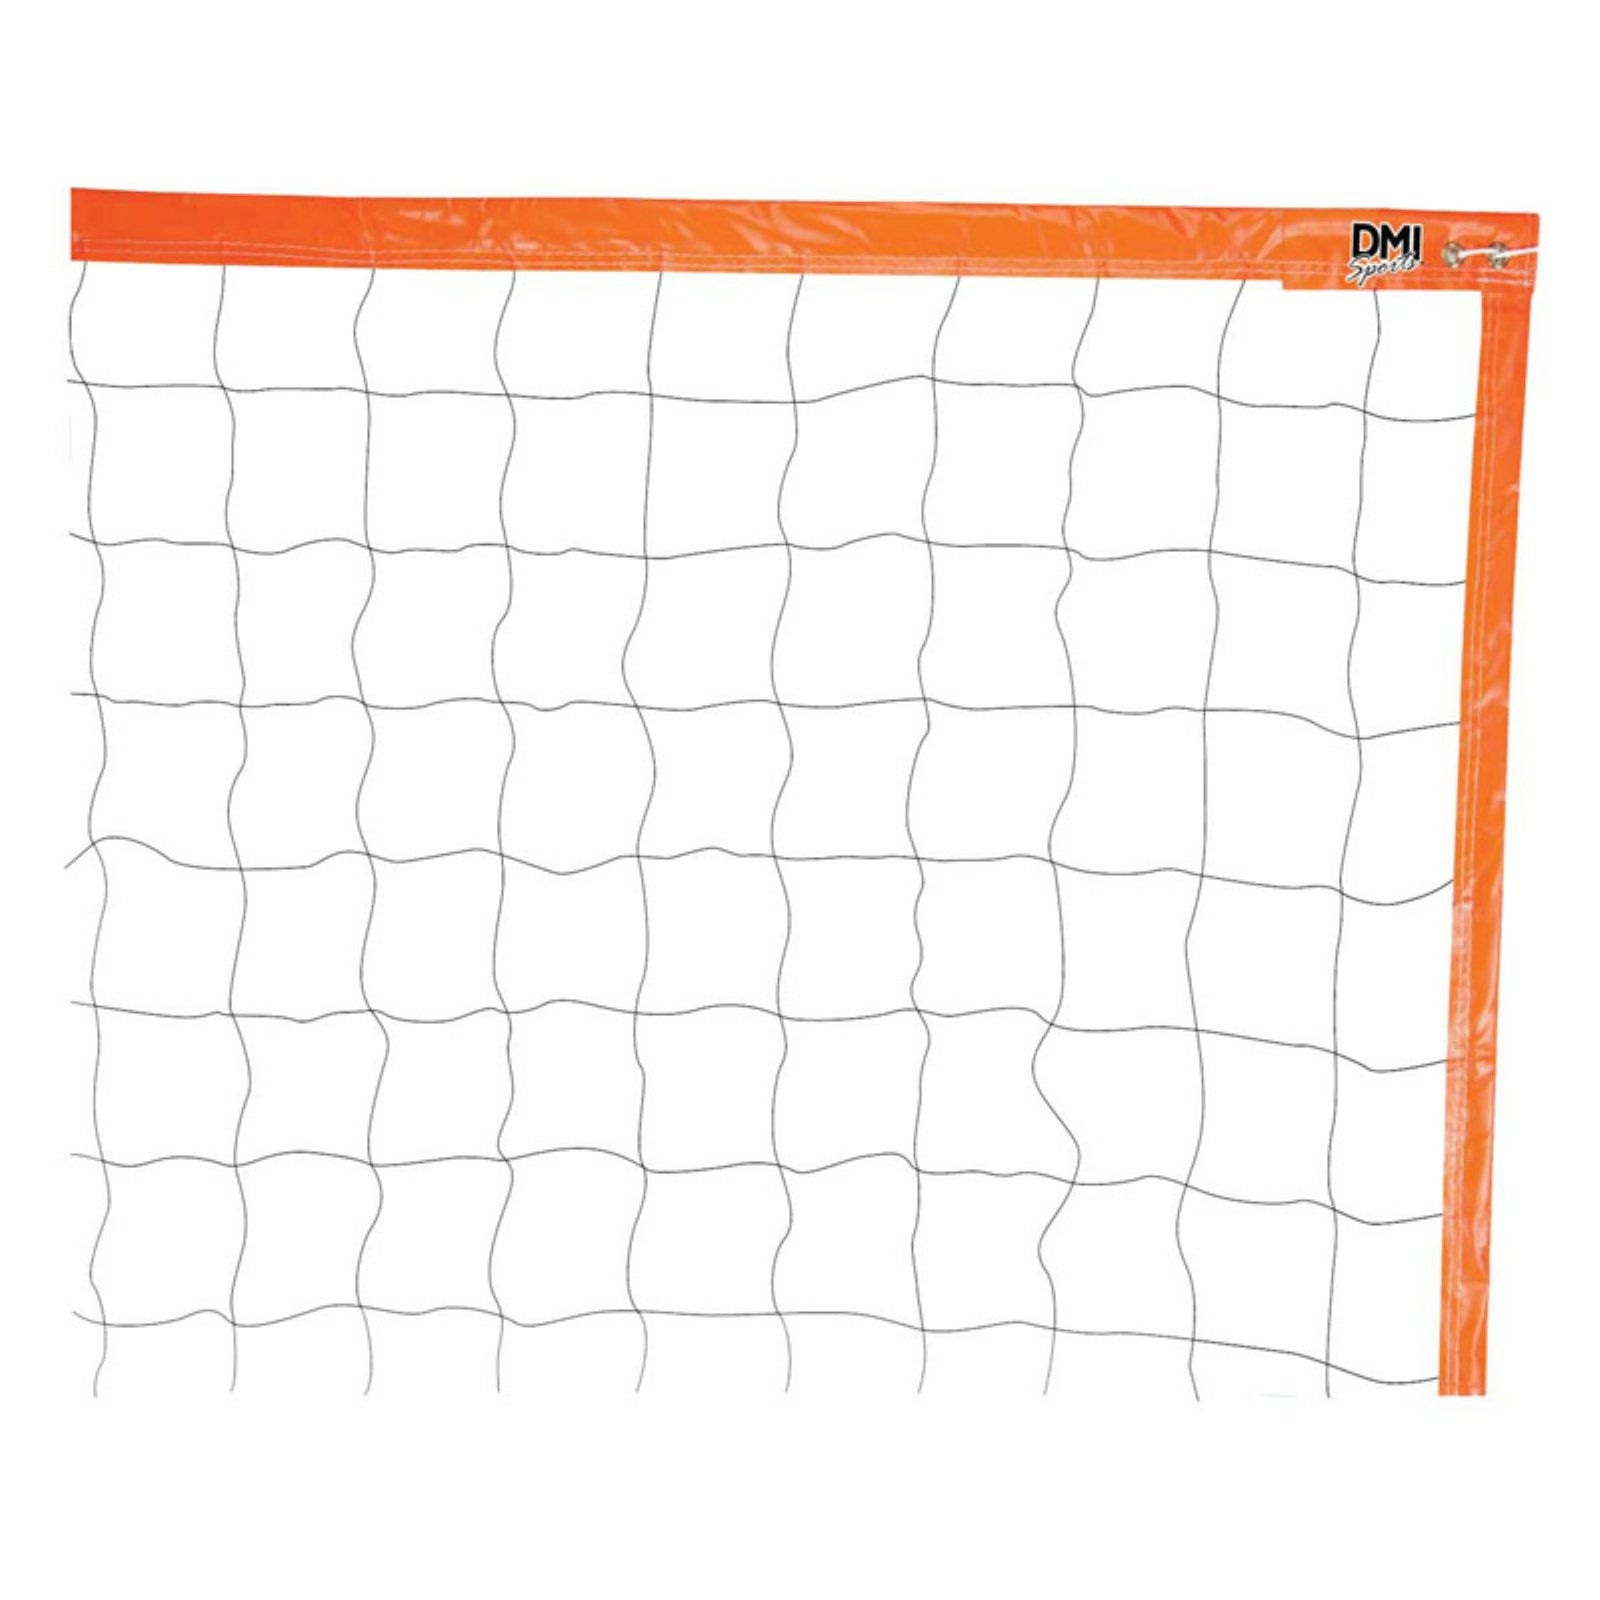 DMI Sports Expert Volleyball Net with Steel Cable